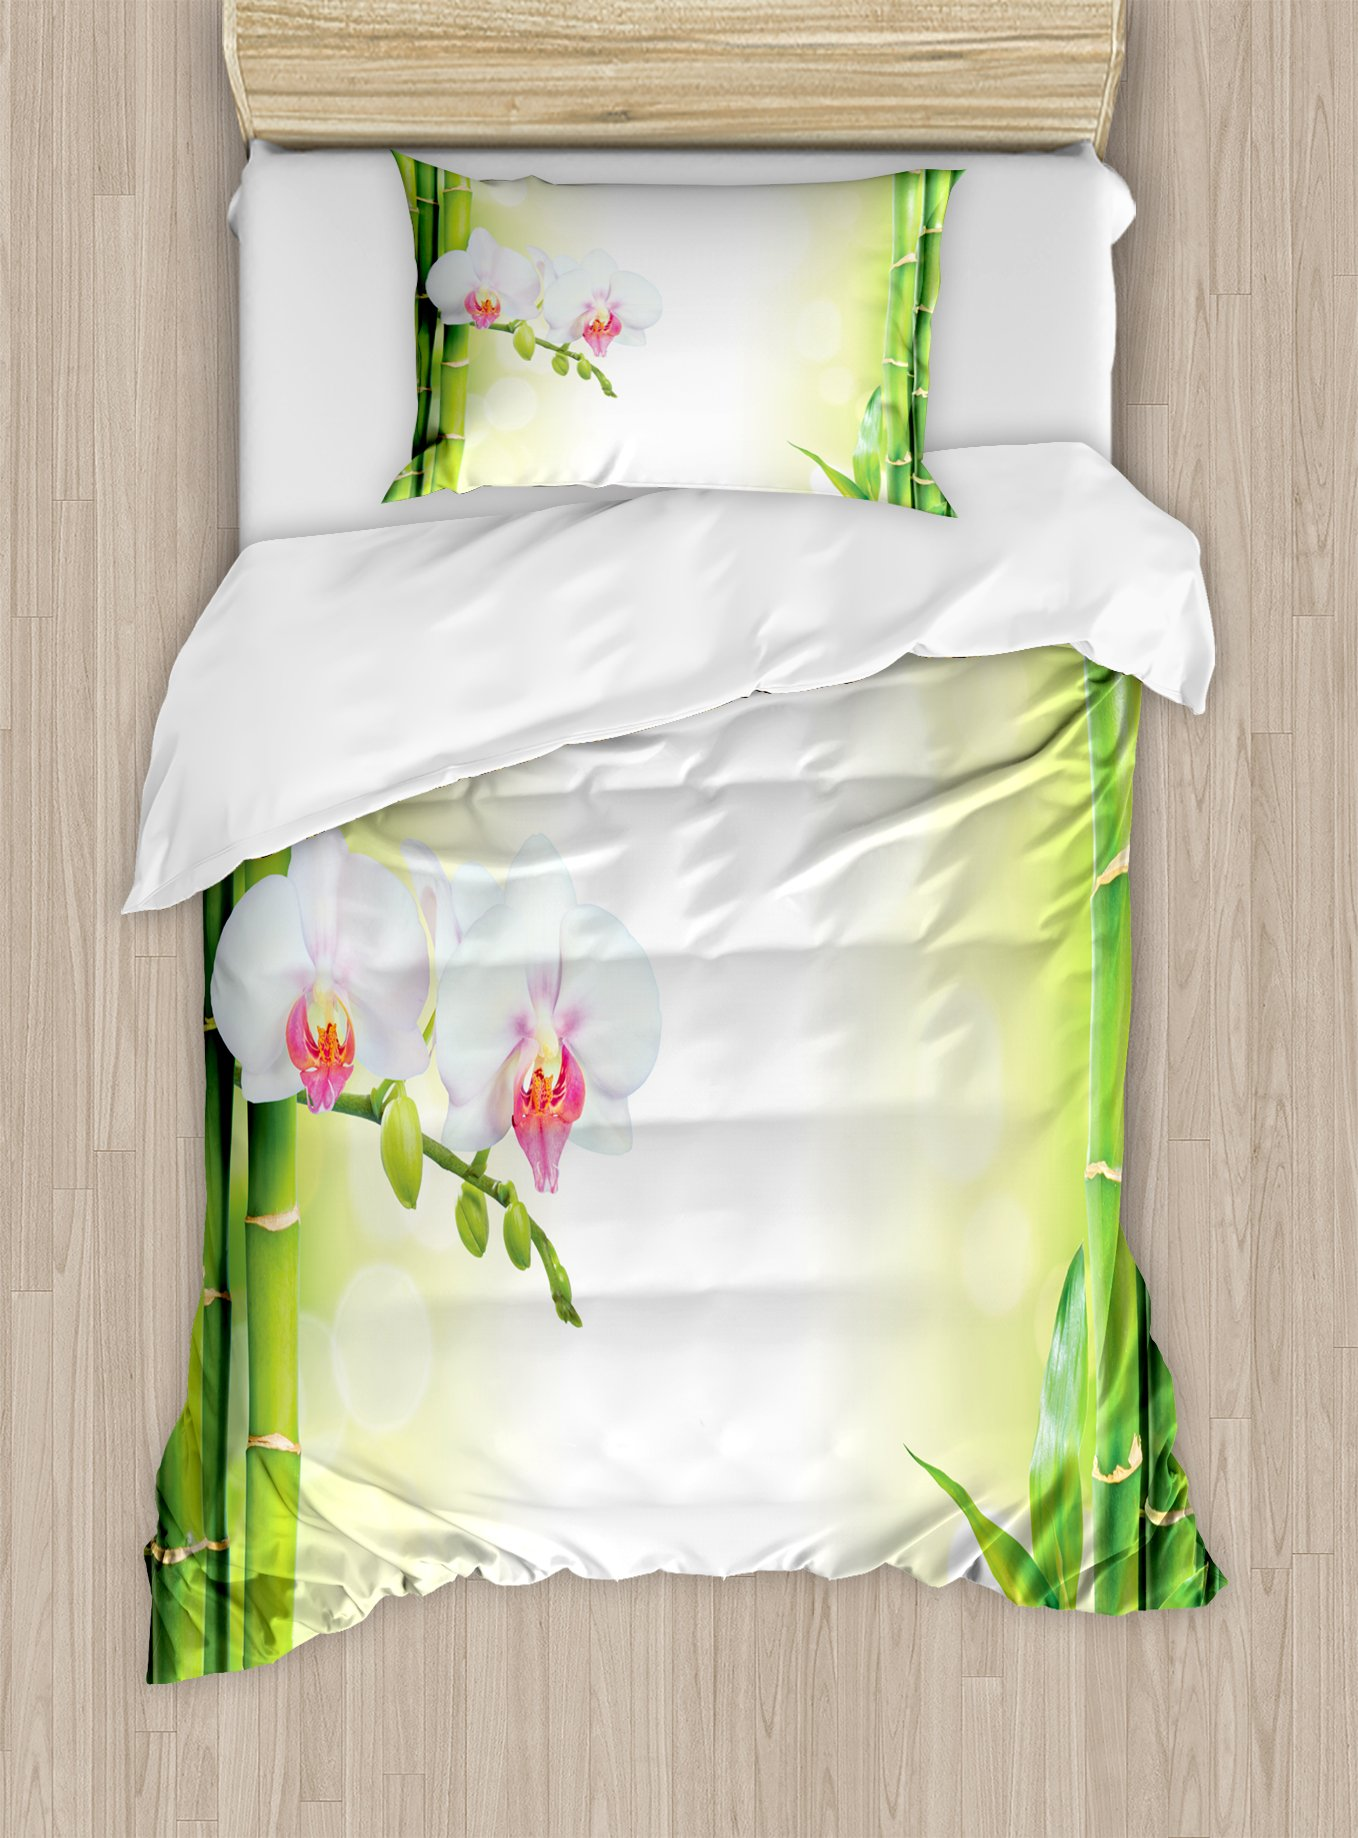 Ambesonne Spa Duvet Cover Set Twin Size, Orchid Flowers with Bamboo Branches in Vibrant Colors Spiritual Practice Theme, Decorative 2 Piece Bedding Set with 1 Pillow Sham, White and Green